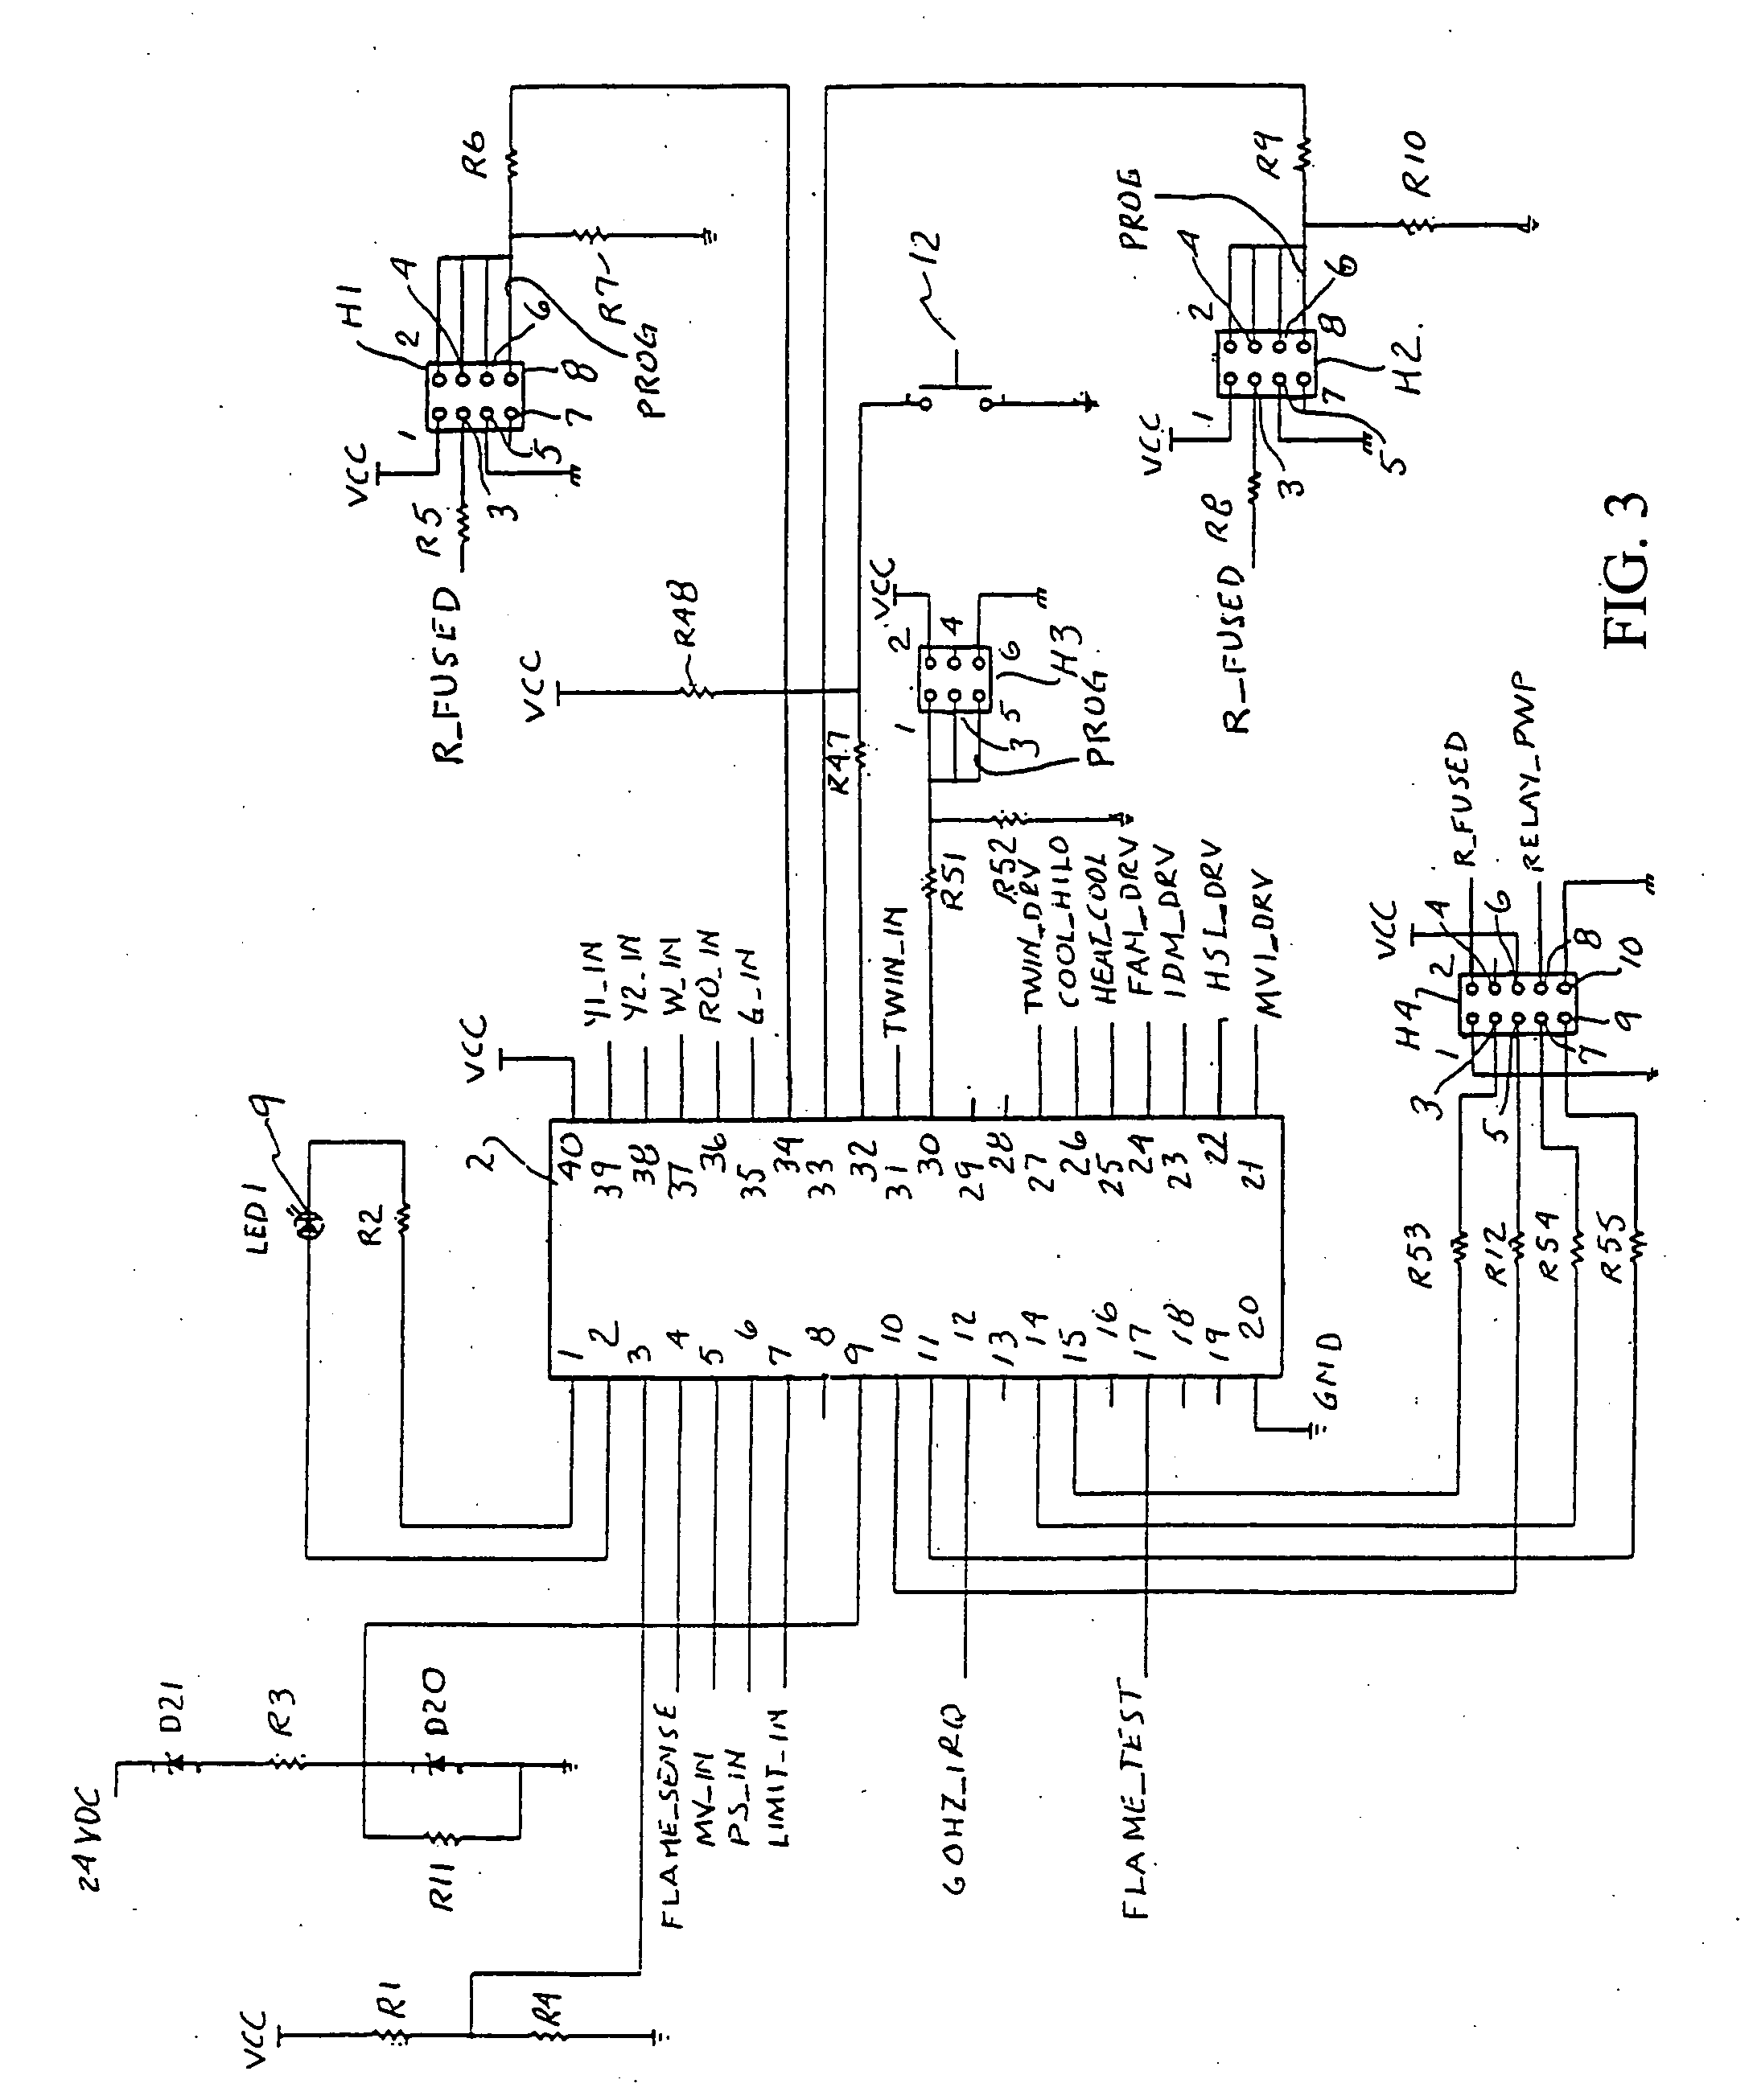 goodman gmp075 3 wiring diagram goodman heat kit wiring